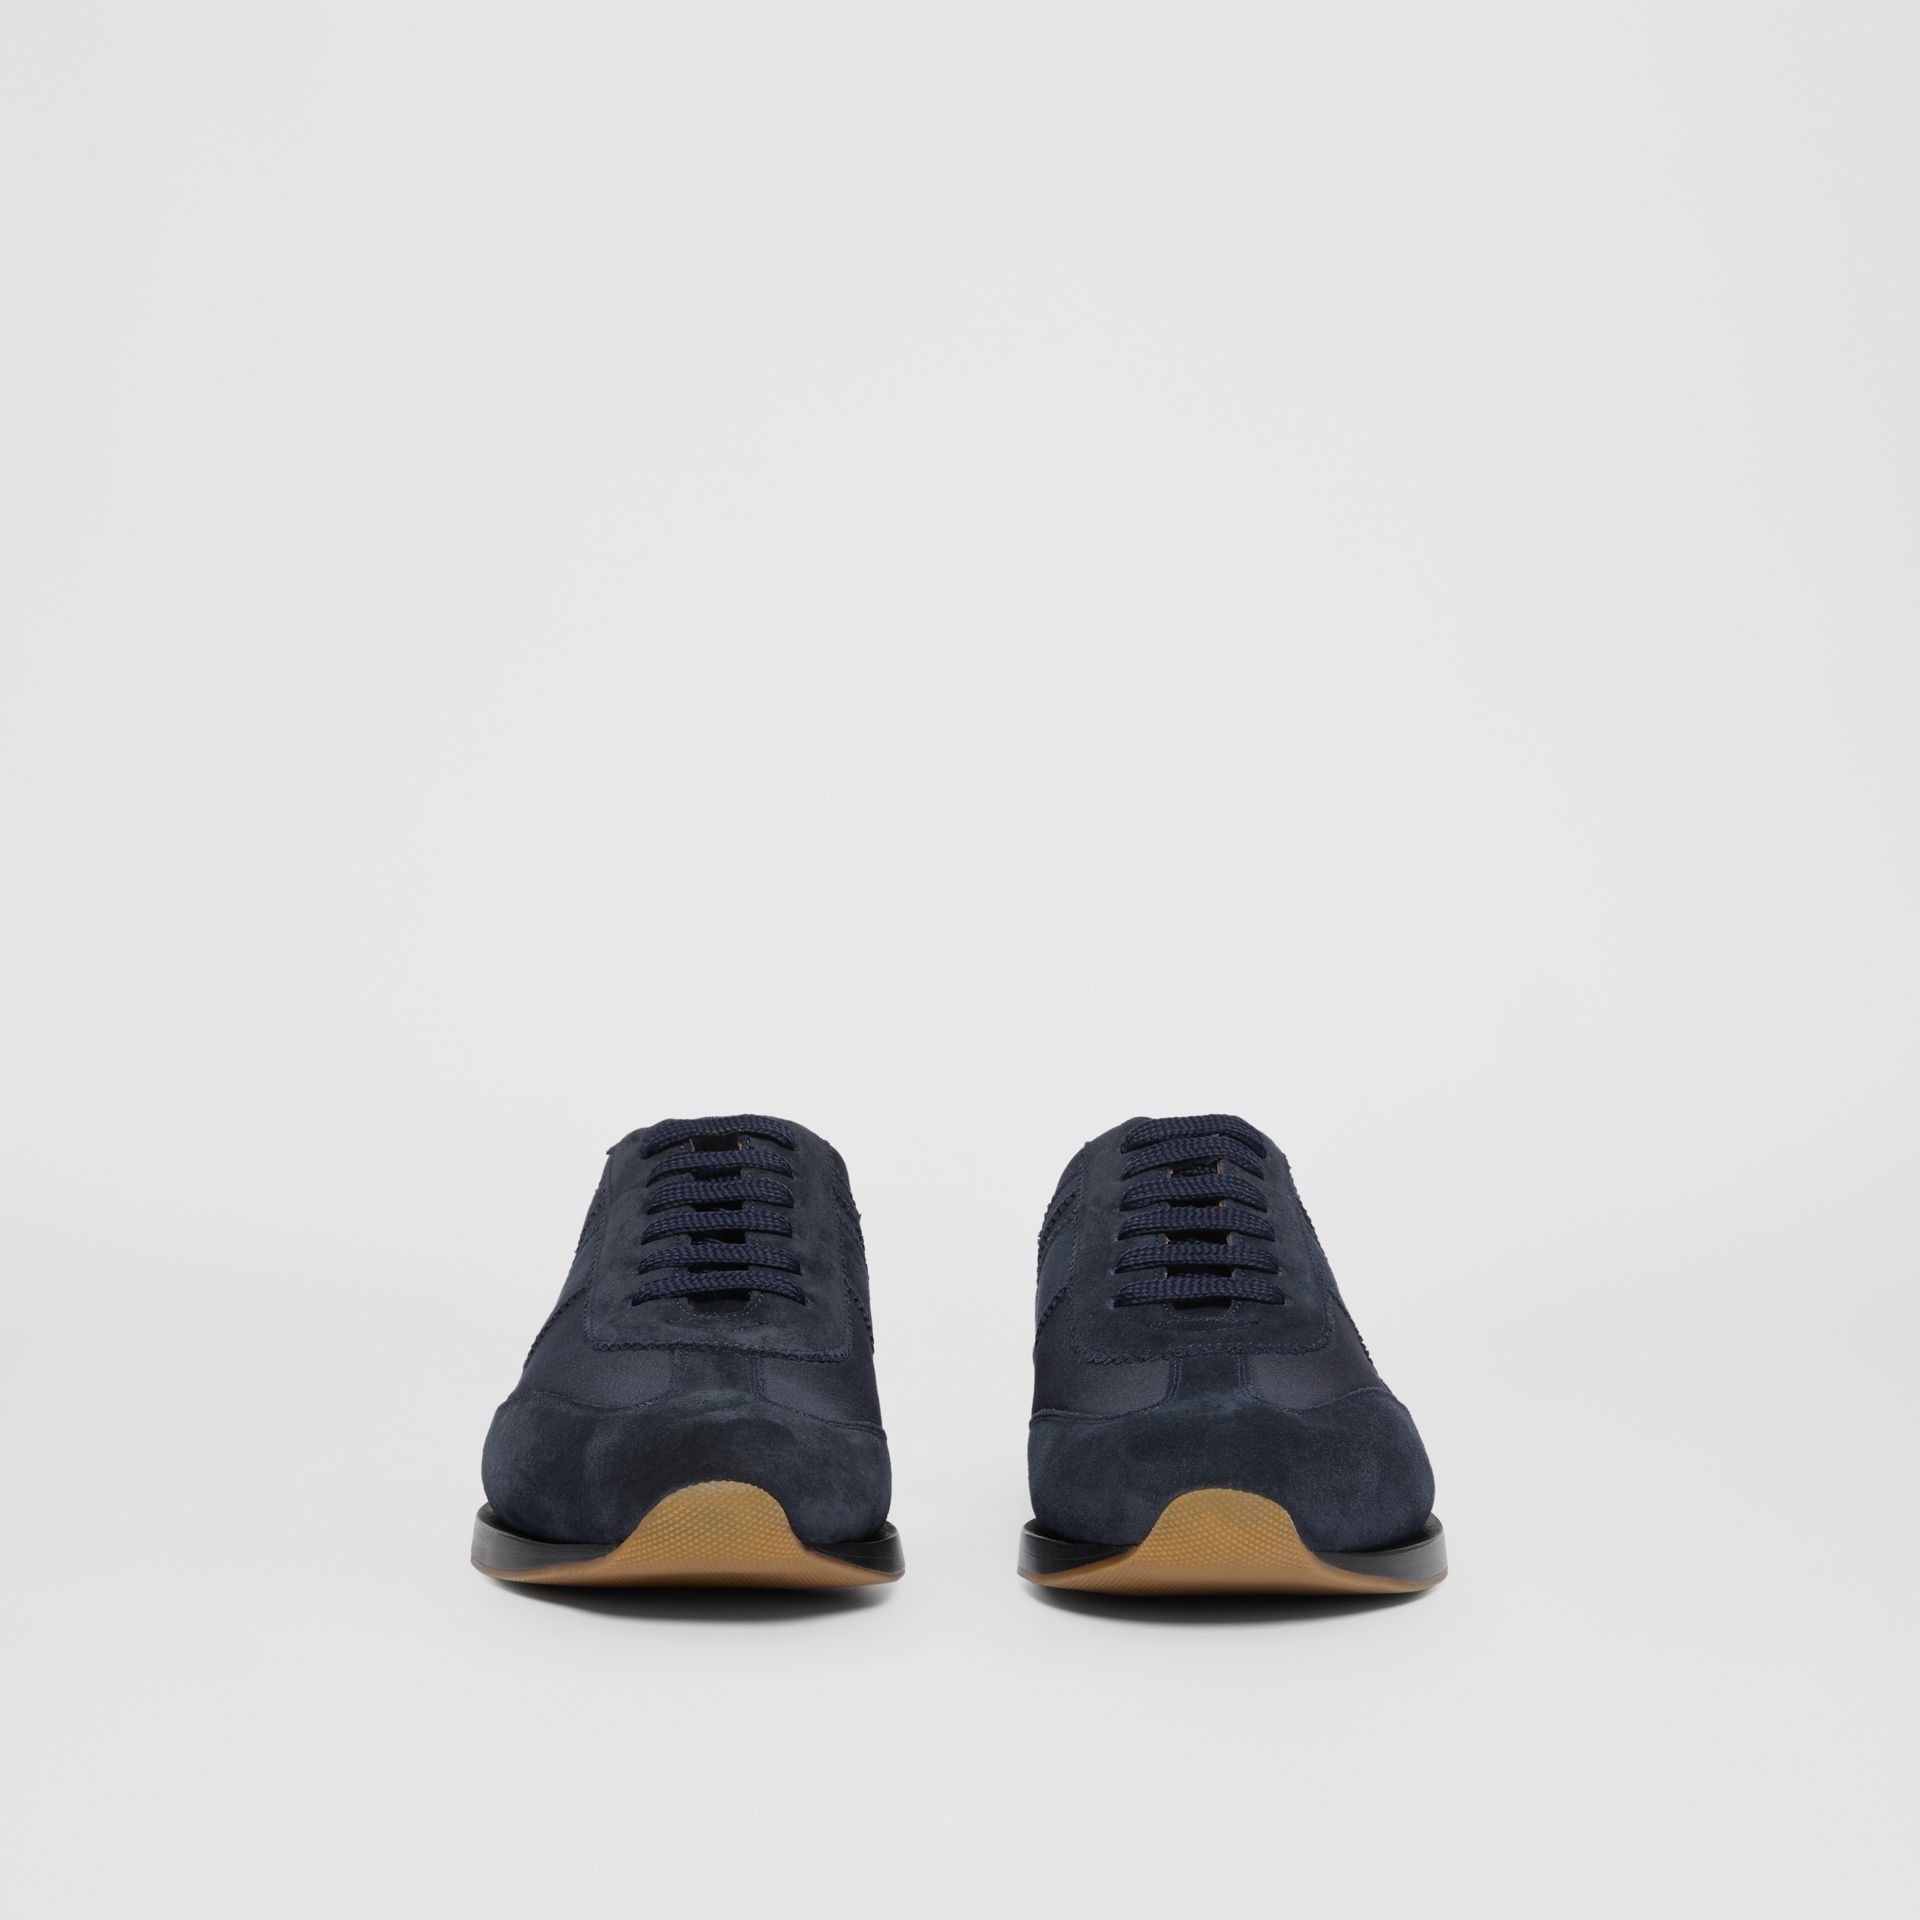 Neoprene Panel Suede Lace-up Shoes in Navy - Men | Burberry United Kingdom - gallery image 2